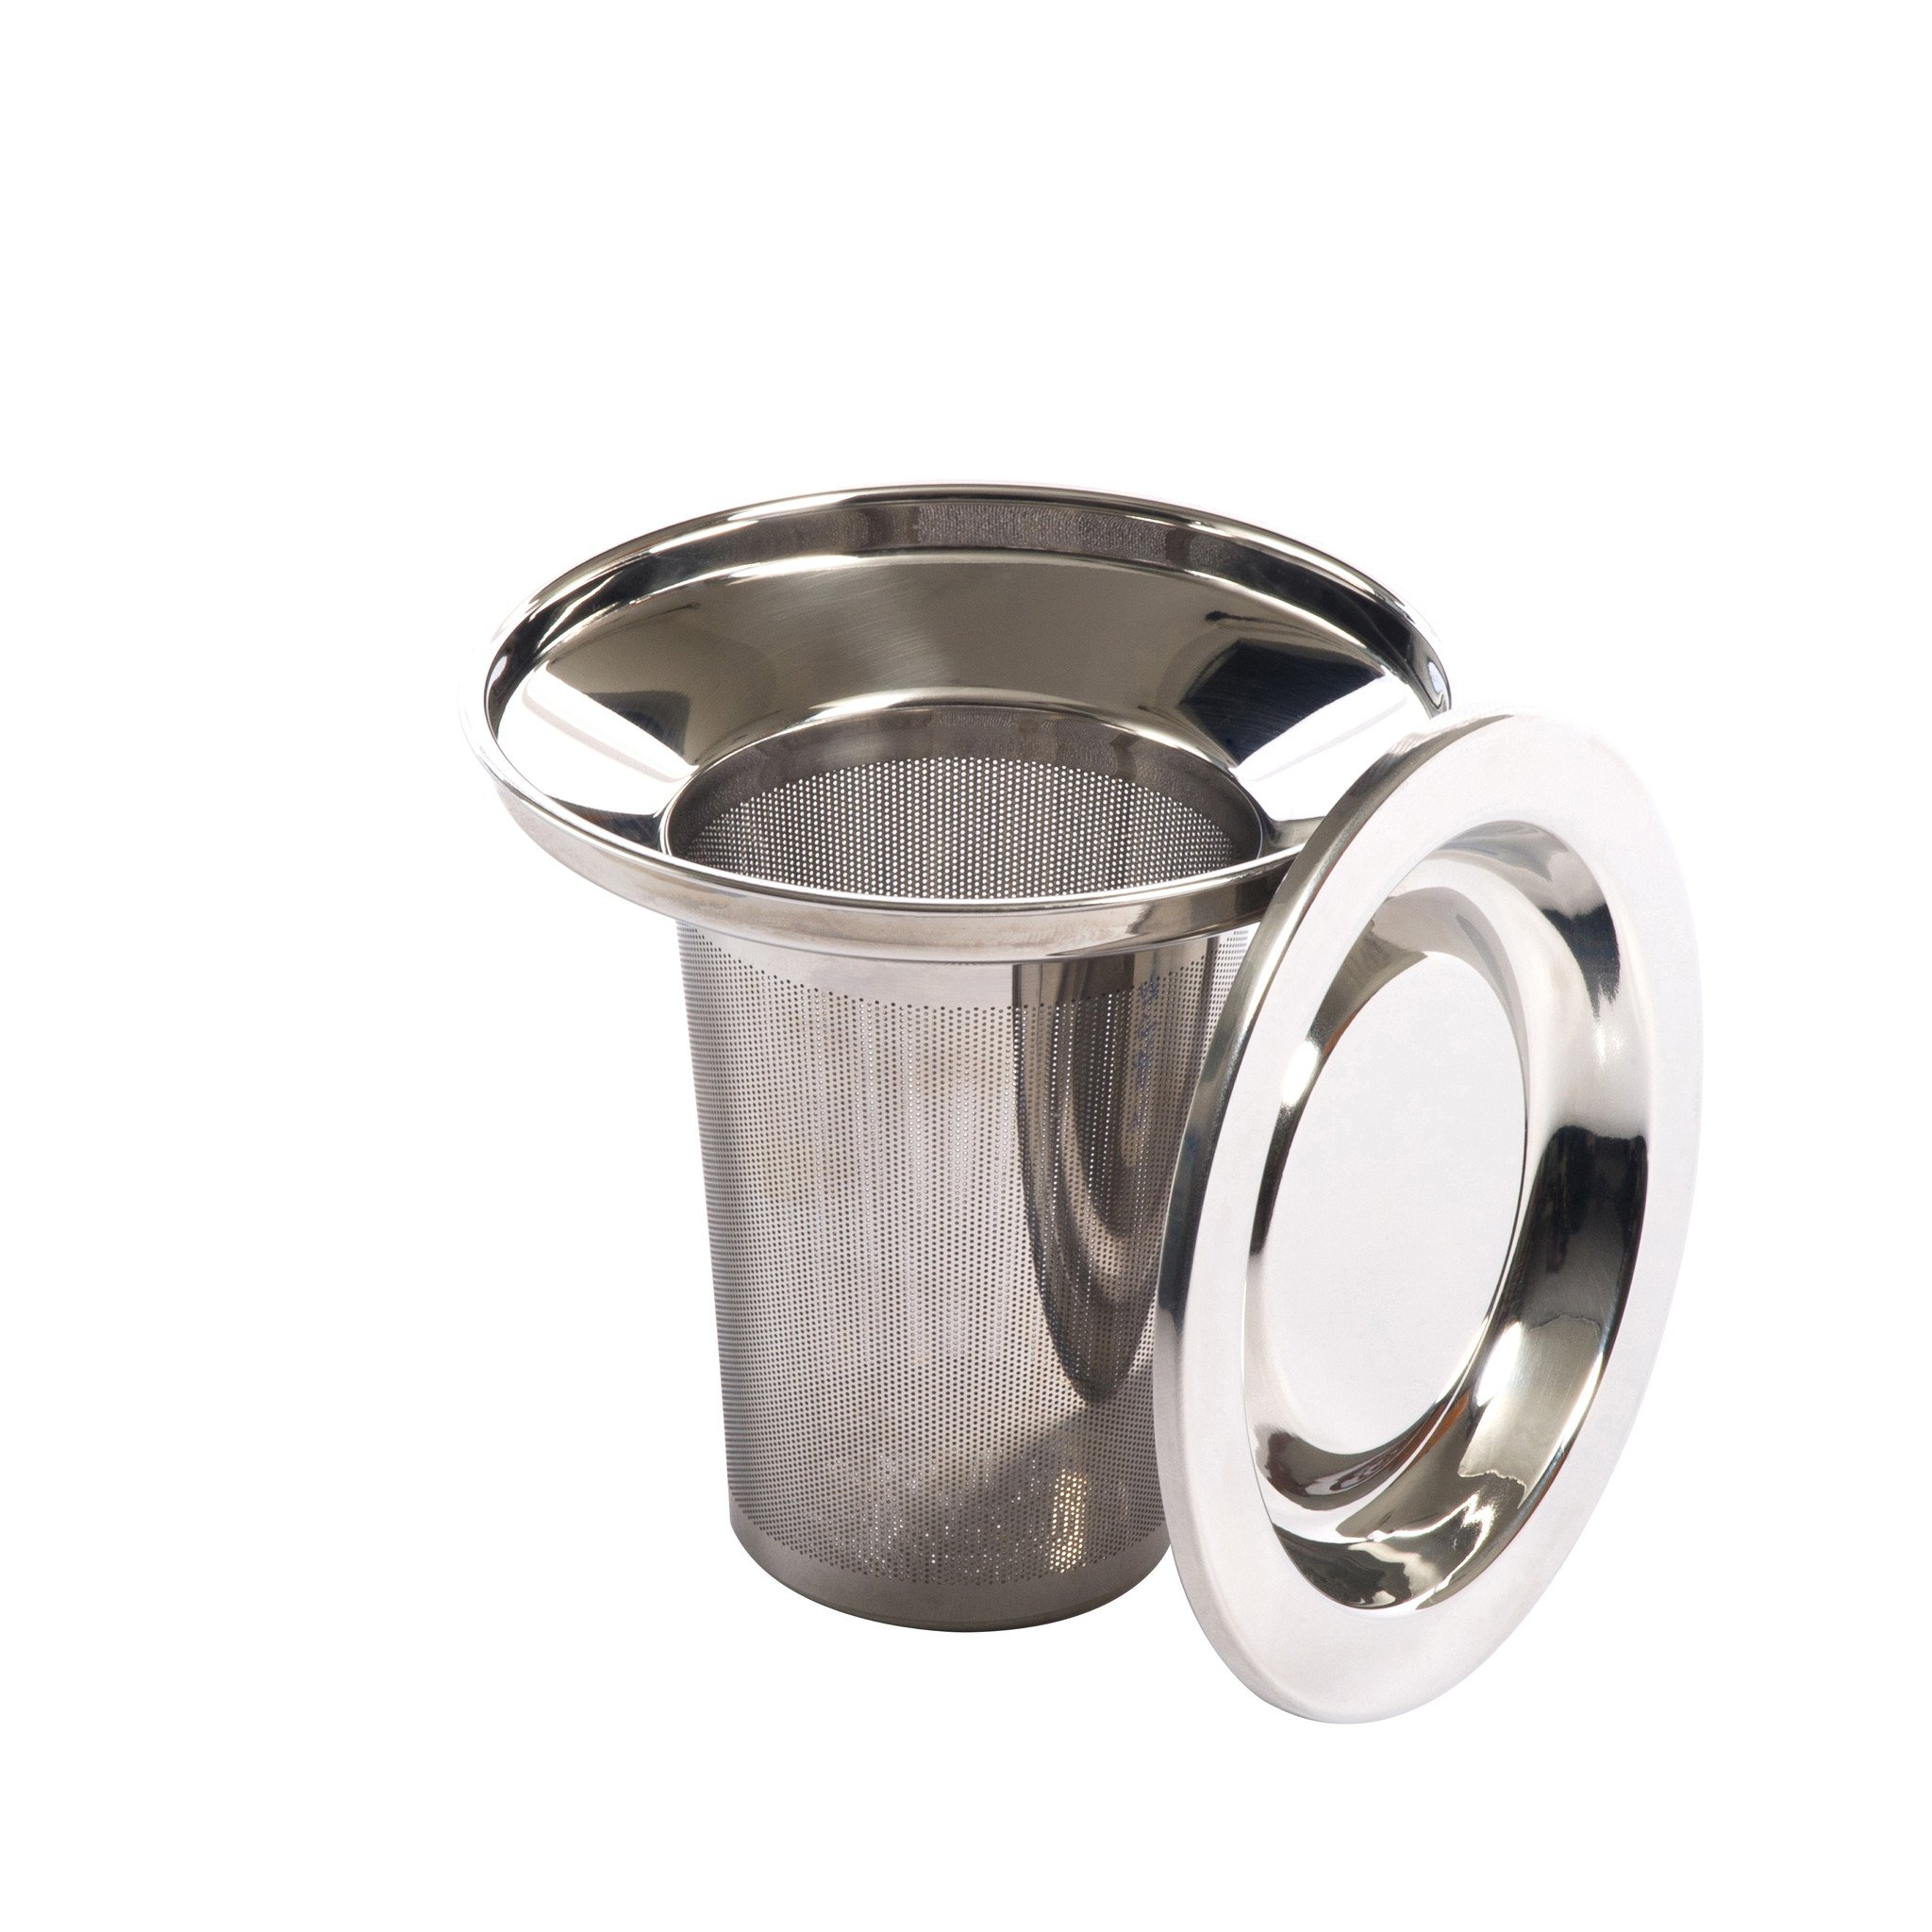 TEA FILTER FOR TEACUP